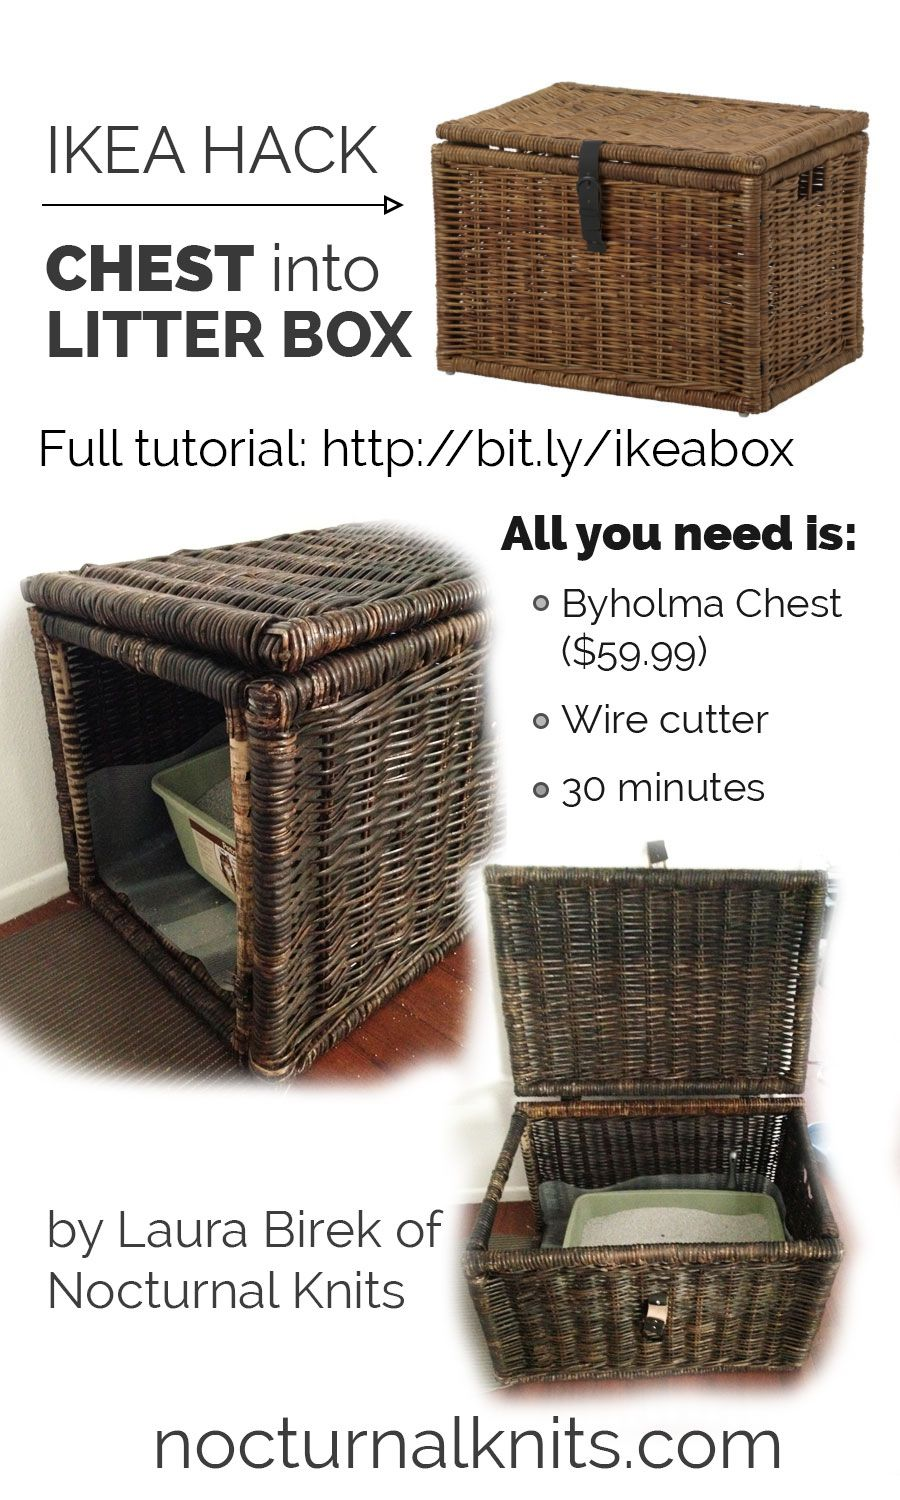 How to make a low cost ikea cat bed apartment therapy - I Would Just Is It As A Covered Cat Bed Not A Litter Box Ikea Cat Litter Box Hack Turn A Cheap Chest Into Custom Cat Box Furniture In Under An